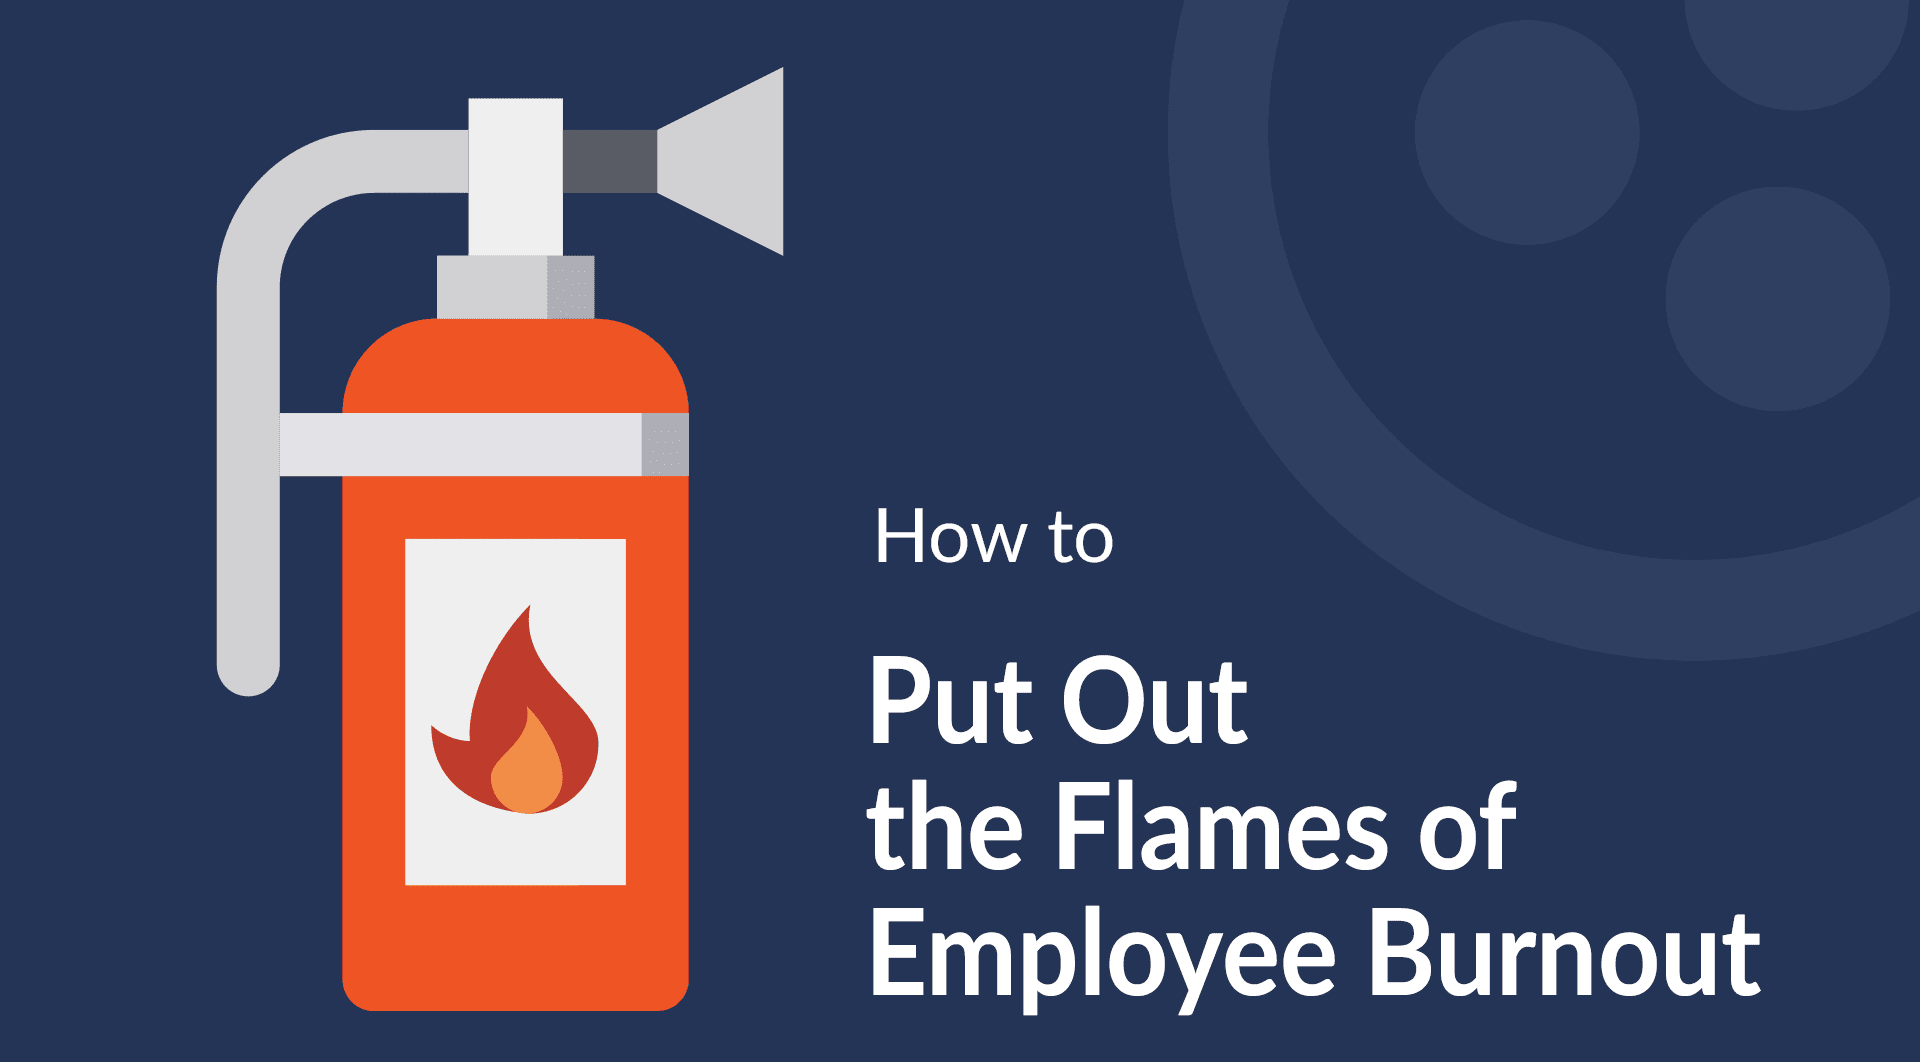 How to Put Out the Flames of Employee Burnout